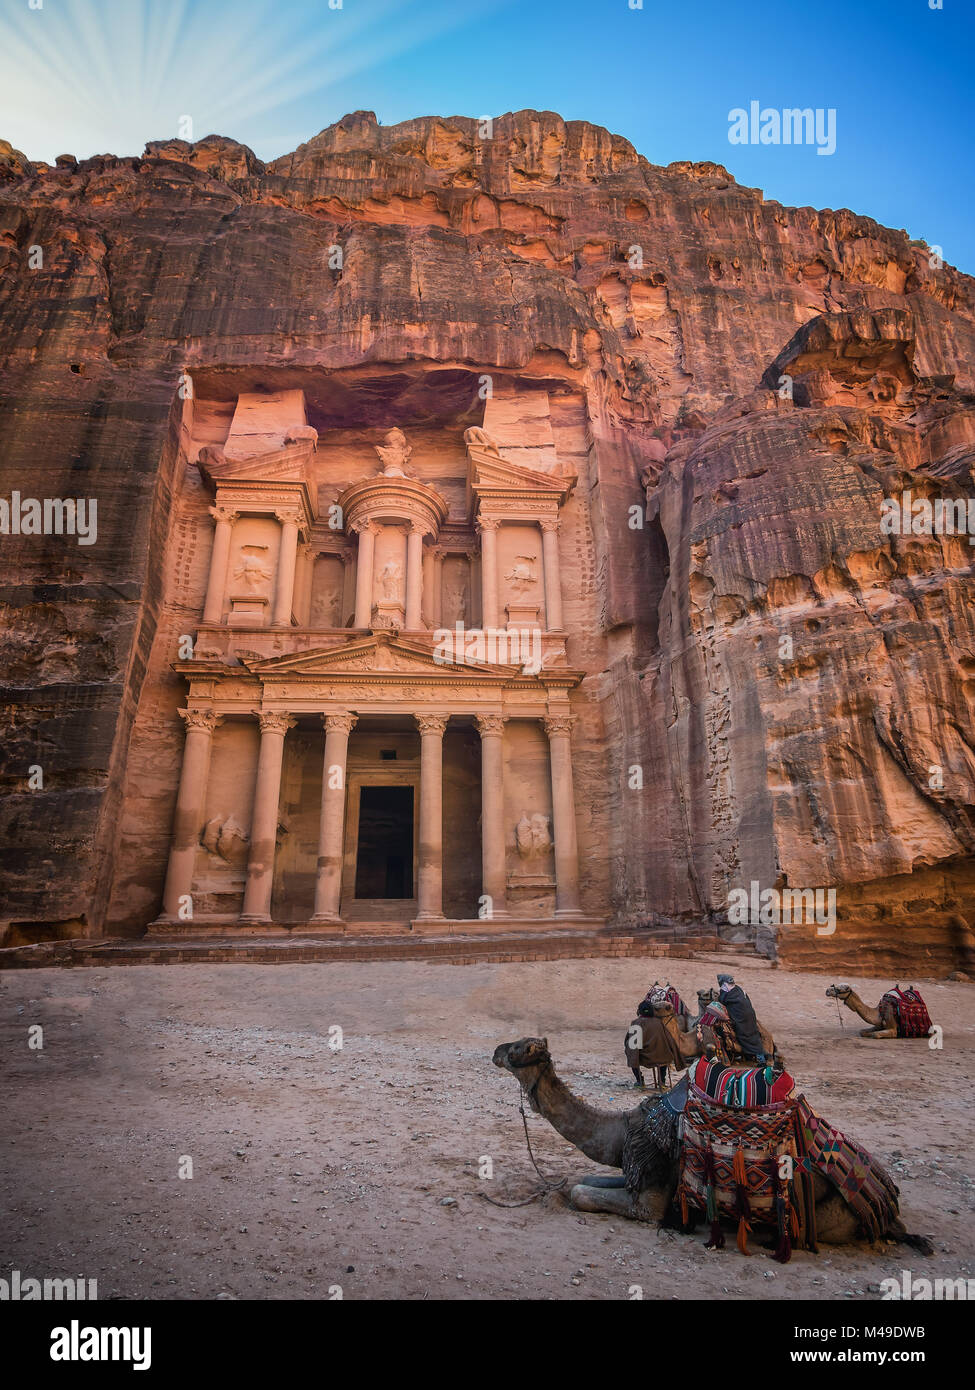 The Shrine in Petra seen from the gorge, Jordan Stock Photo